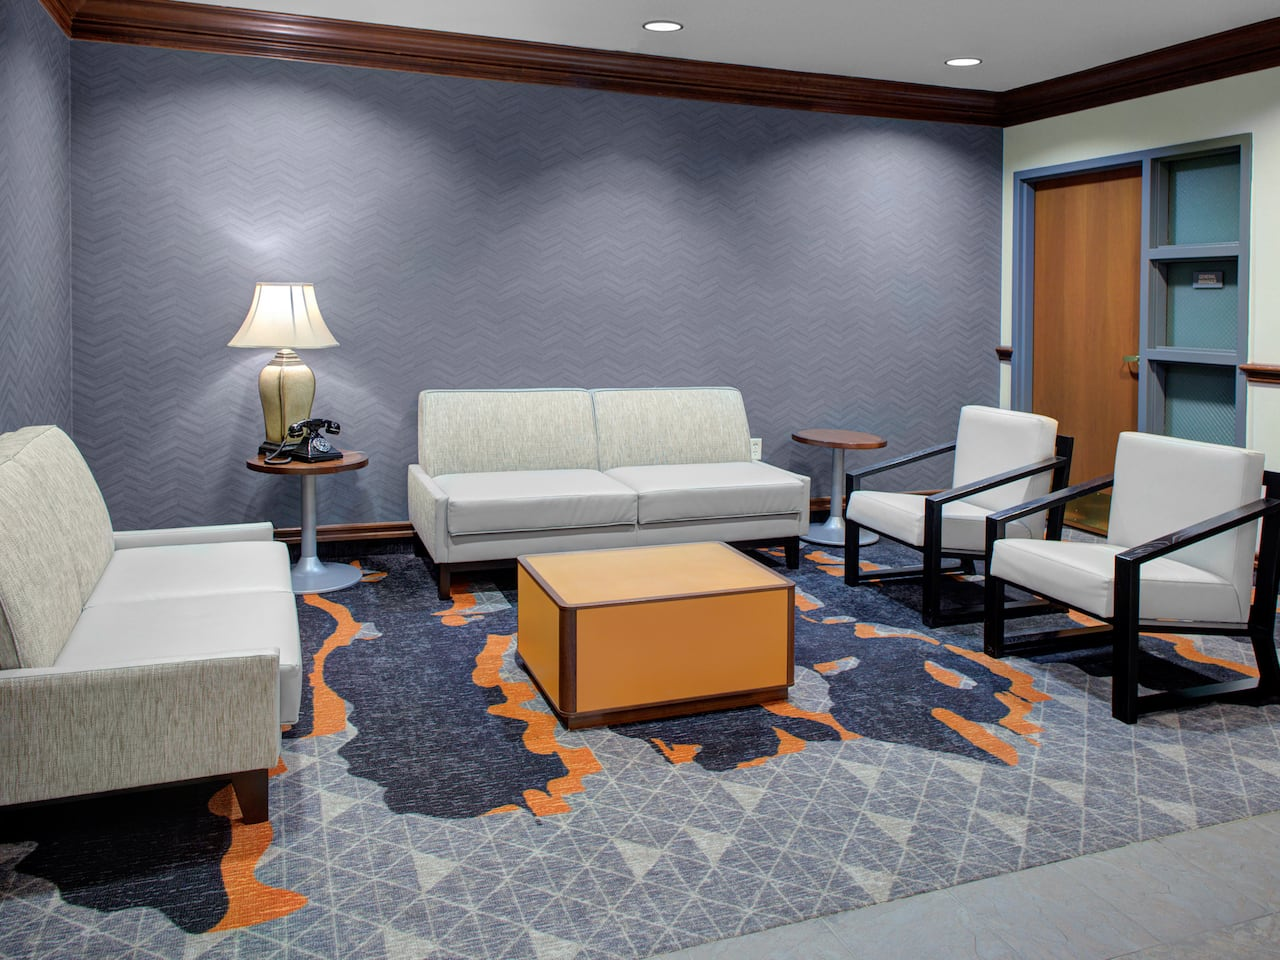 Hyatt House Lobby In Parsippany, New Jersey